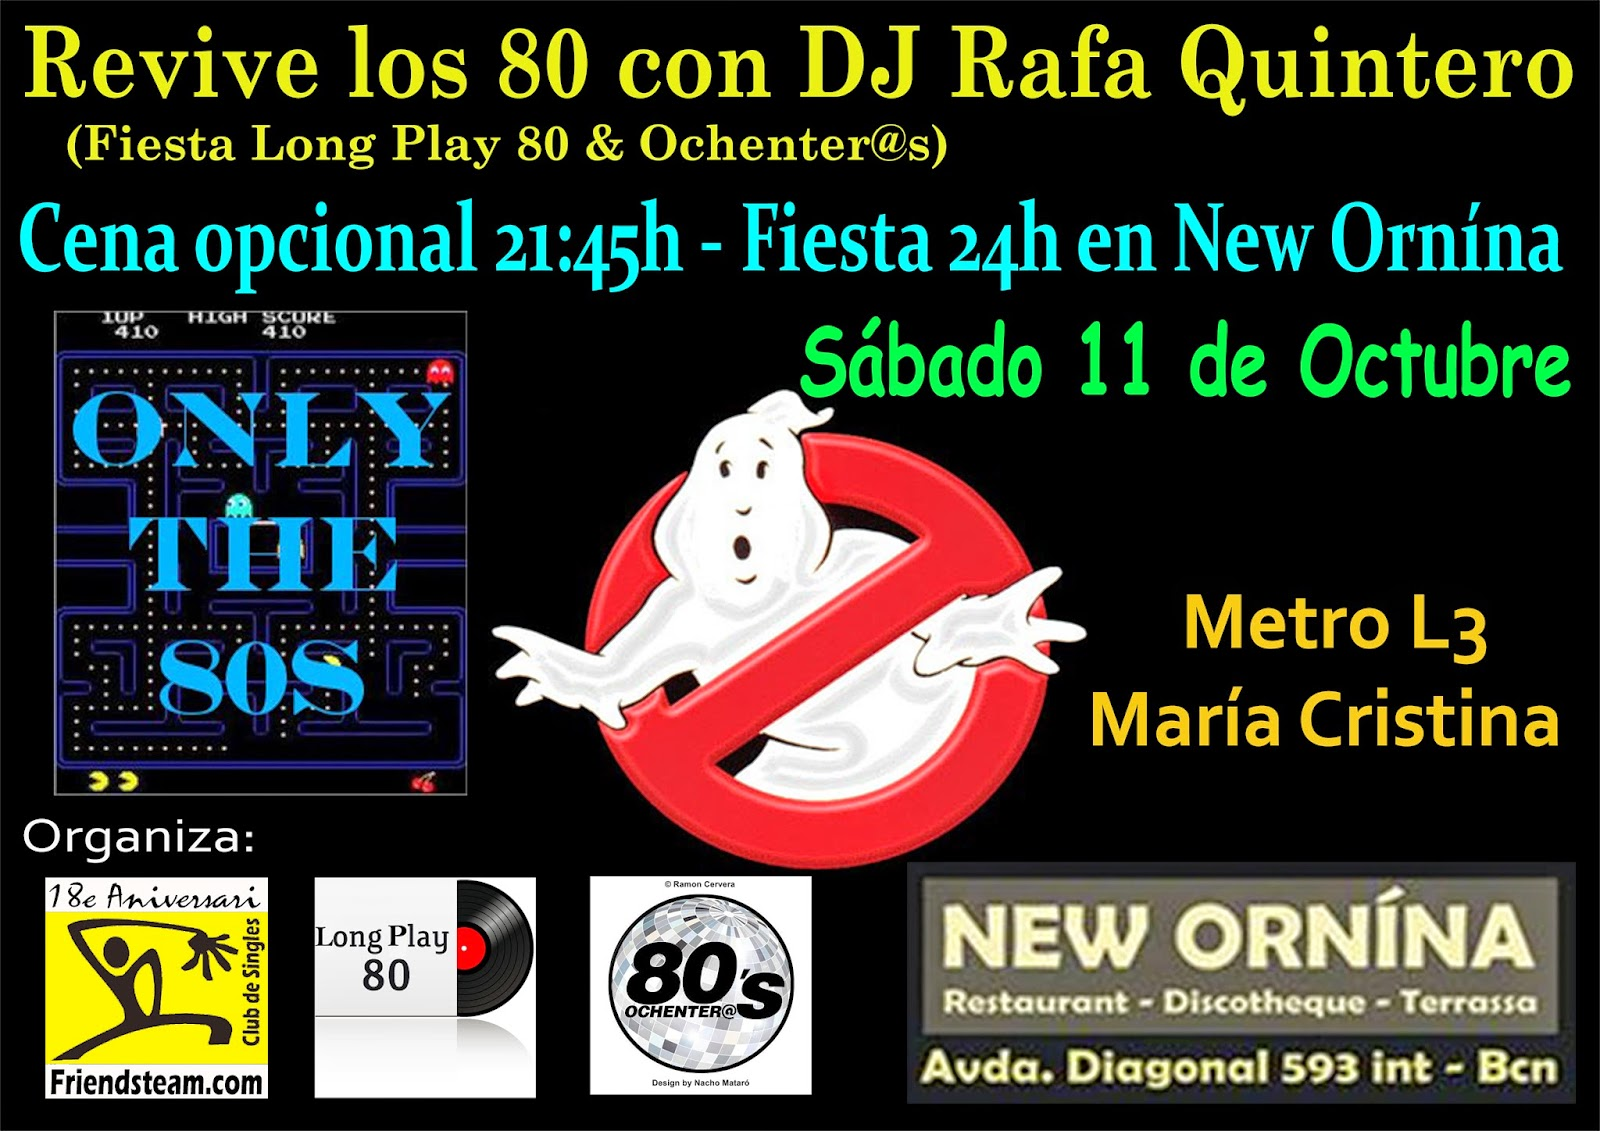 Flyer Fiesta Revive los 80 11/10/2014